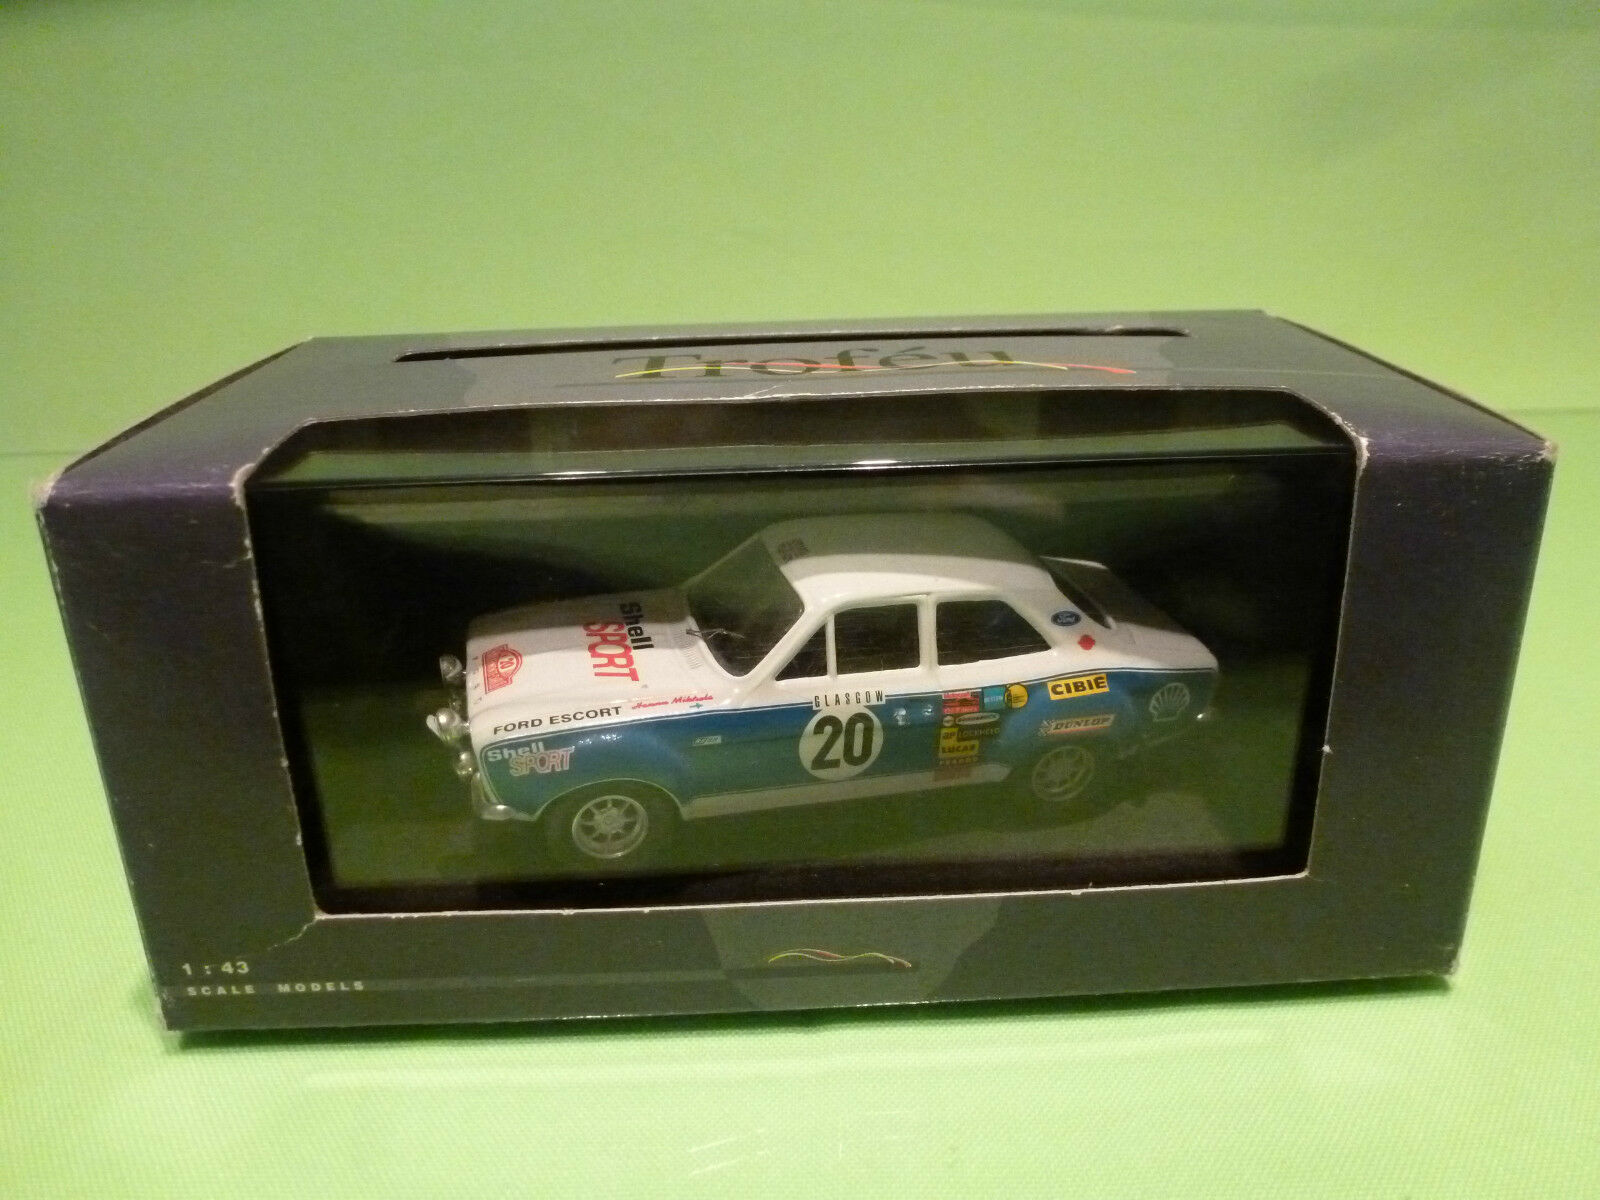 TROFFORD ESCORT RS 1600 RACING ROADCAR - WHITE 1 1 1 43 - NEAR MINT IN BOX 194496